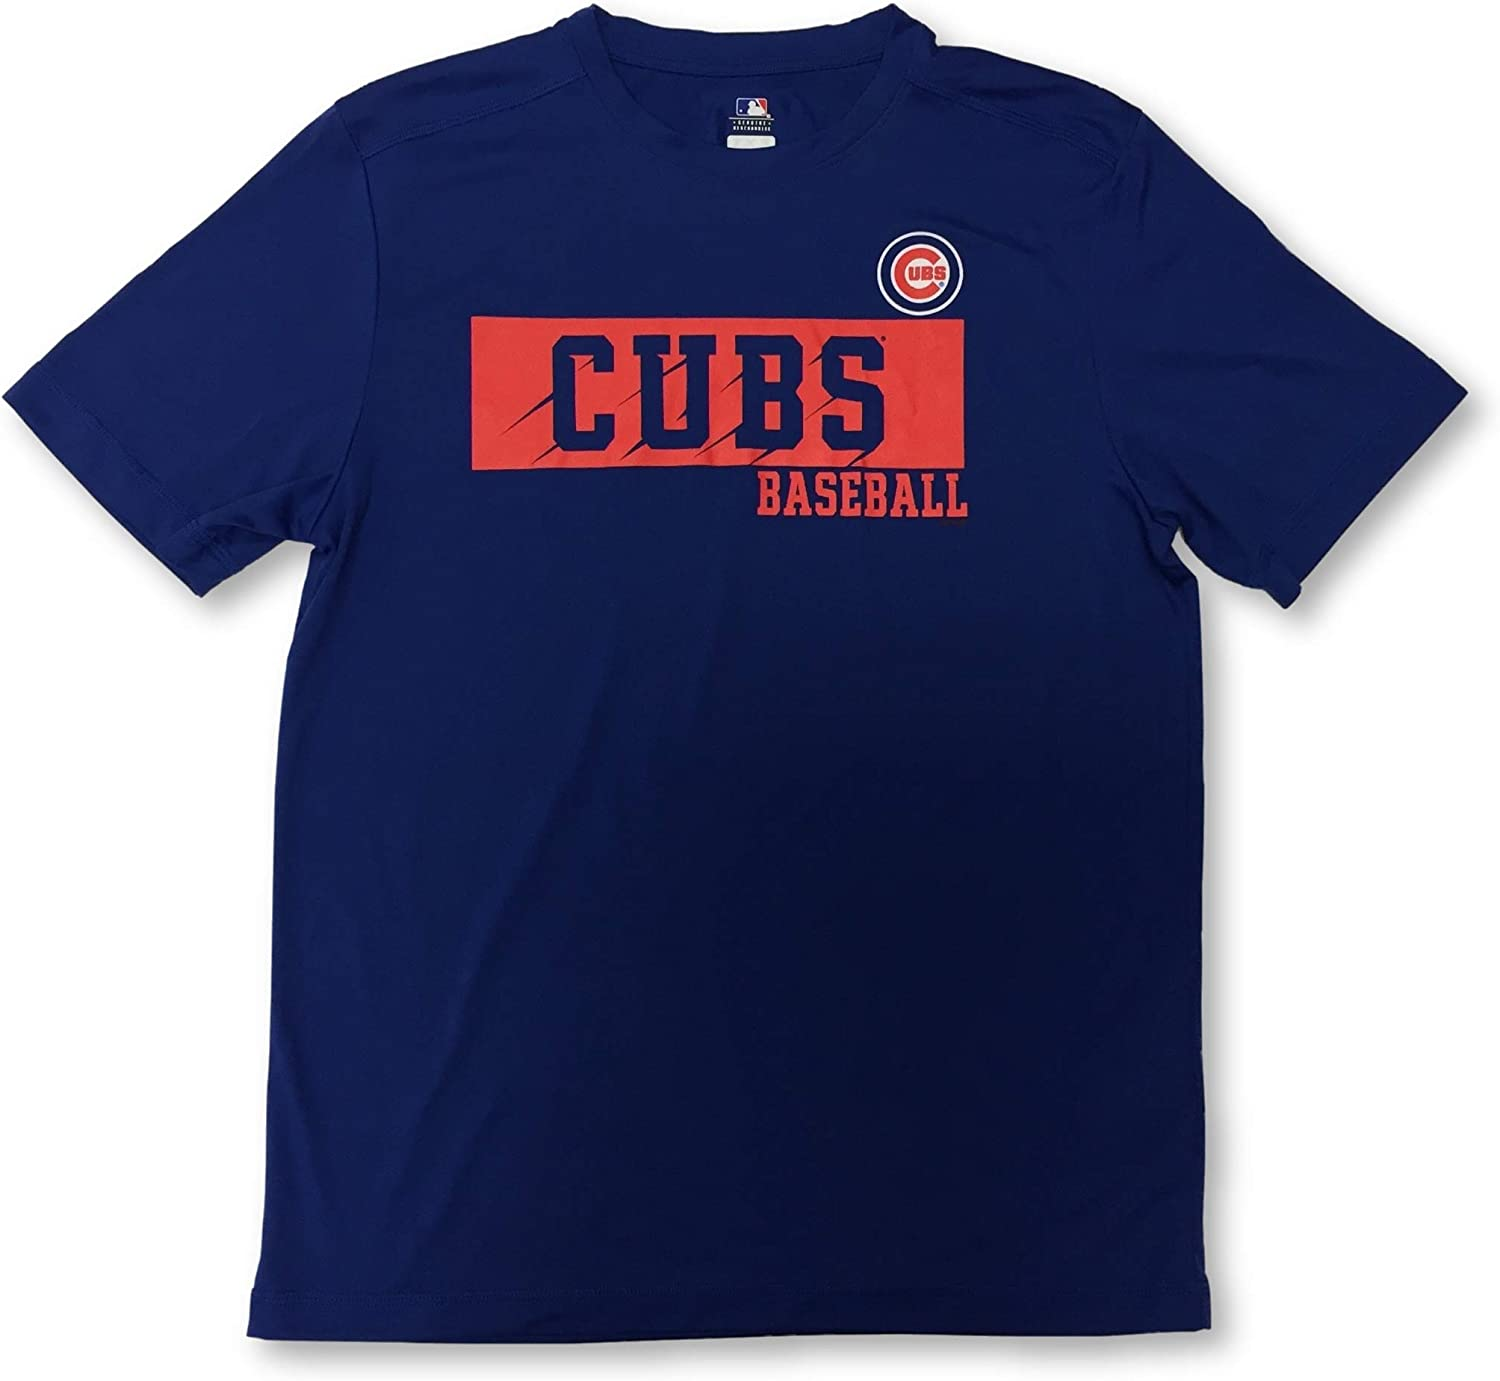 Majestic Chicago Cubs Adult Mens Crew Neck T-Shirt